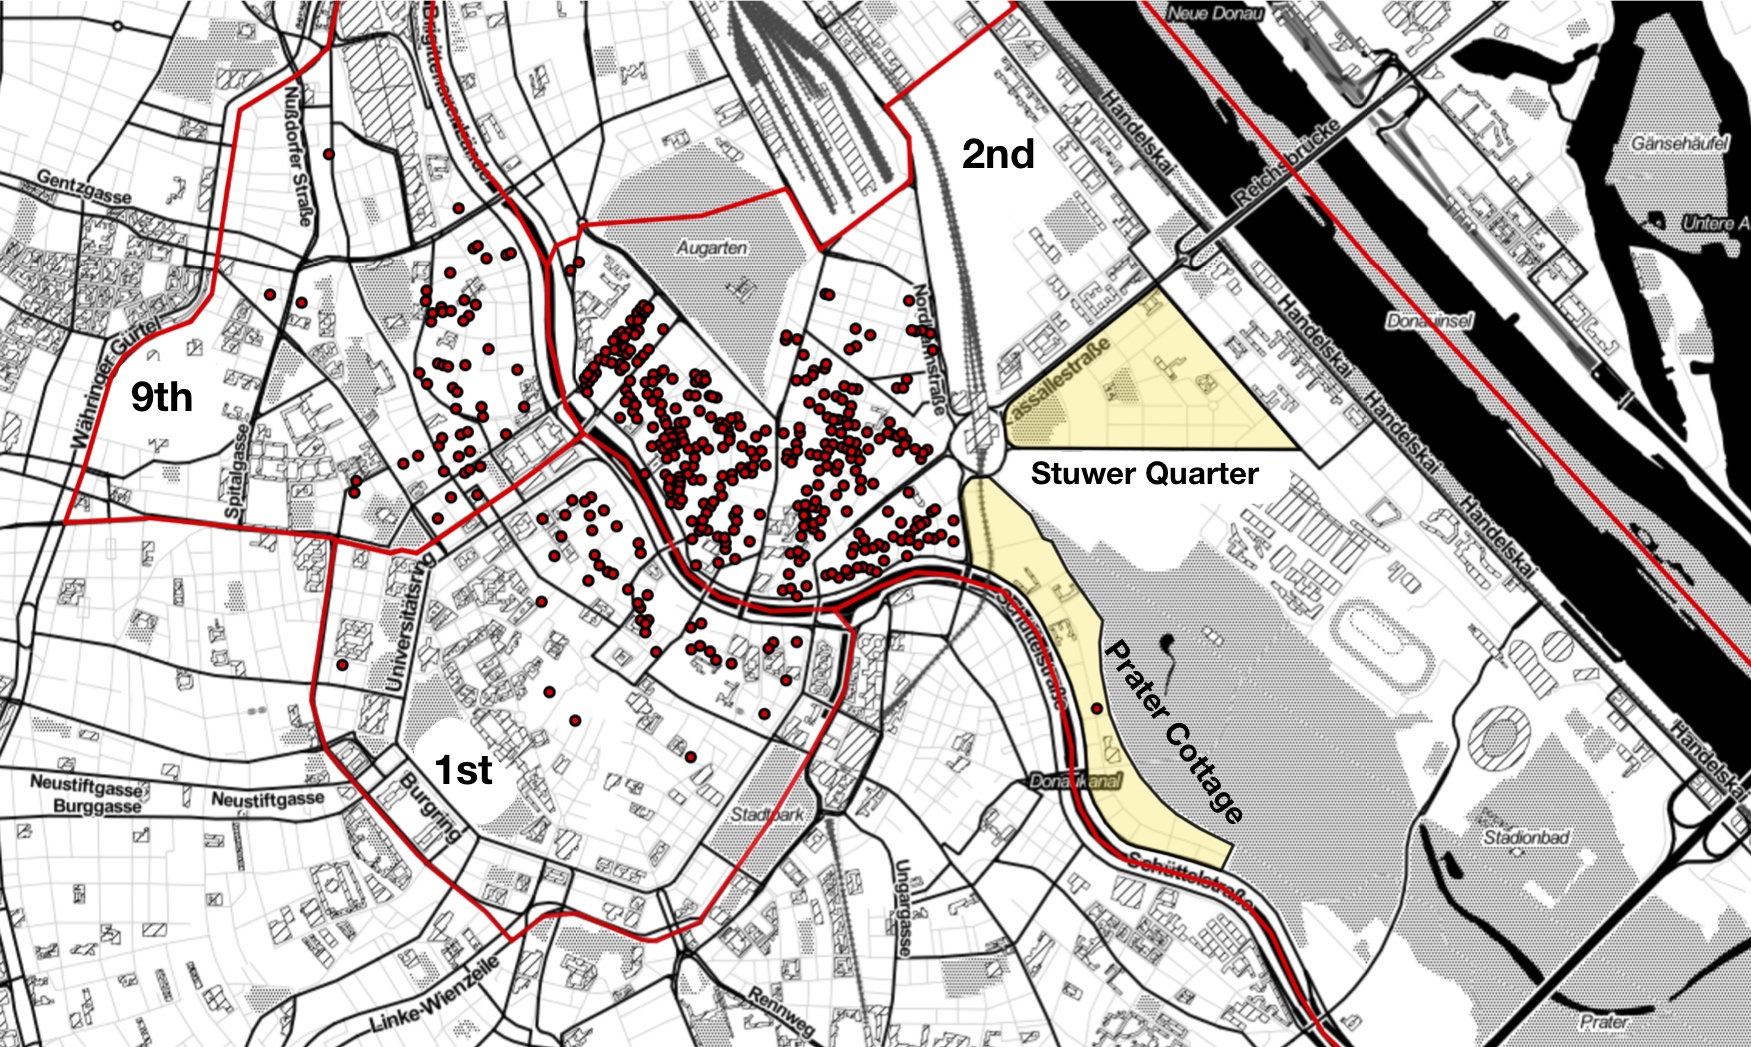 Fig. 5: Last-known place of residence for Holocaust victims before their deportation in the inner districts of Vienna showing a concentration in specific areas of those districts along the Danube canal (February 1941 – October 1942).